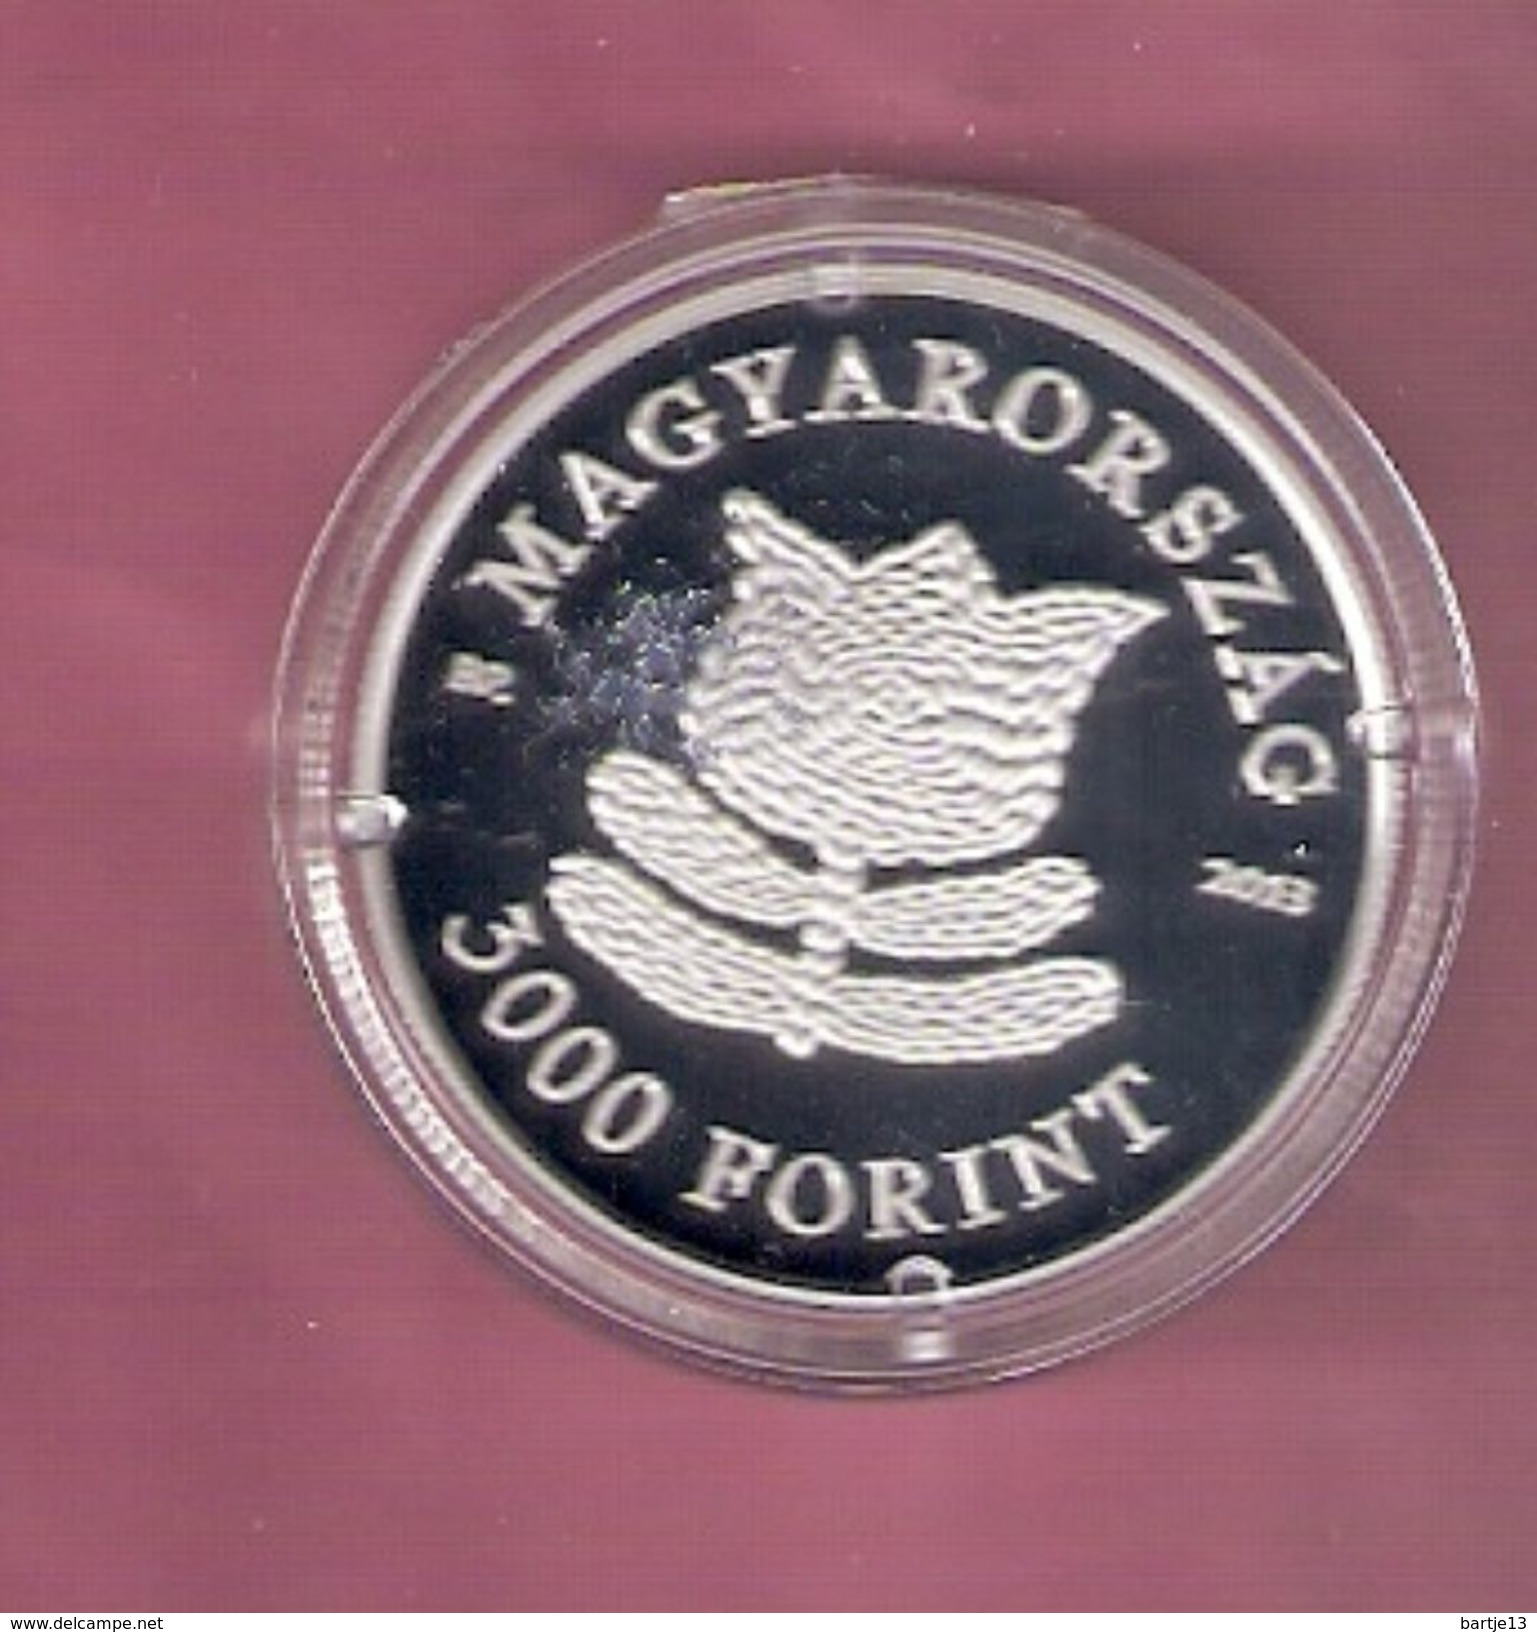 HONGARIJE 3000 FORINT 2013 SILVER PROOF TRADITIONAL DANCE - SCRATCHES ONLY ON CAPSEL; - Hongrie